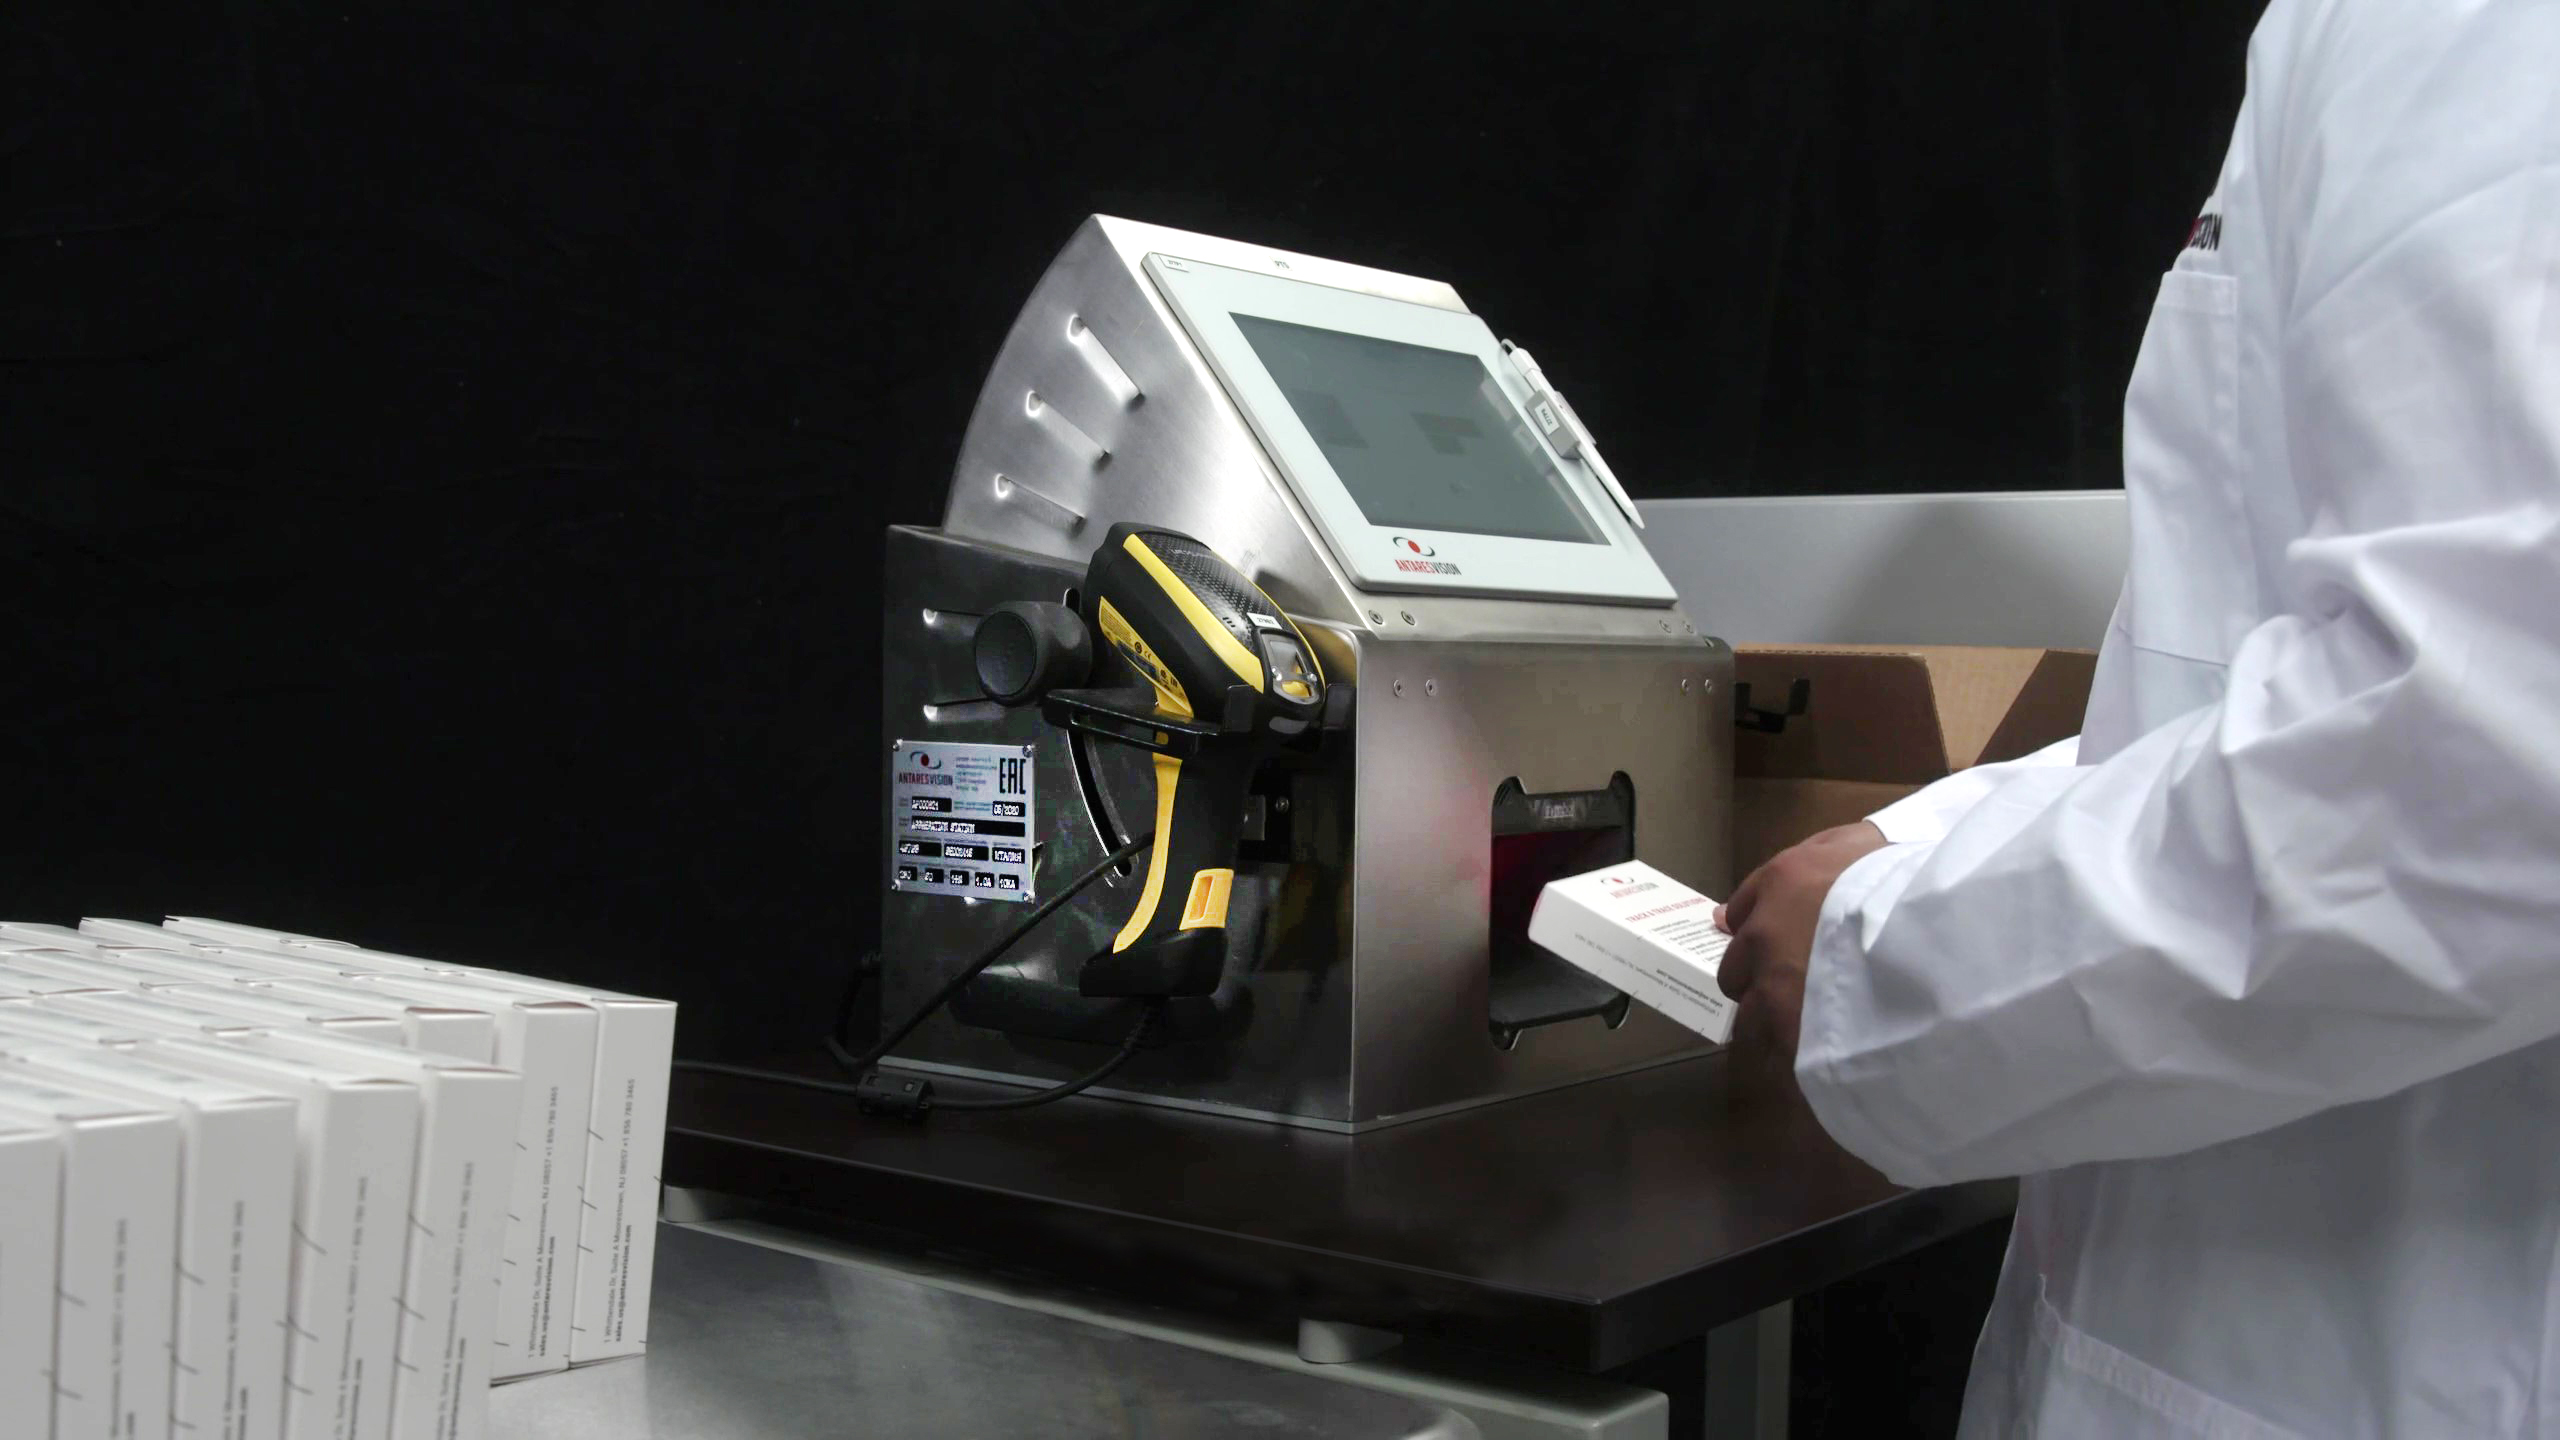 At Pack Expo Las Vegas, Antares Vision Group to Demo New Mini Manual Aggregation Station for Small- to Mid-Sized Production, Among Other Recently Introduced Traceability & Inspection Solutions